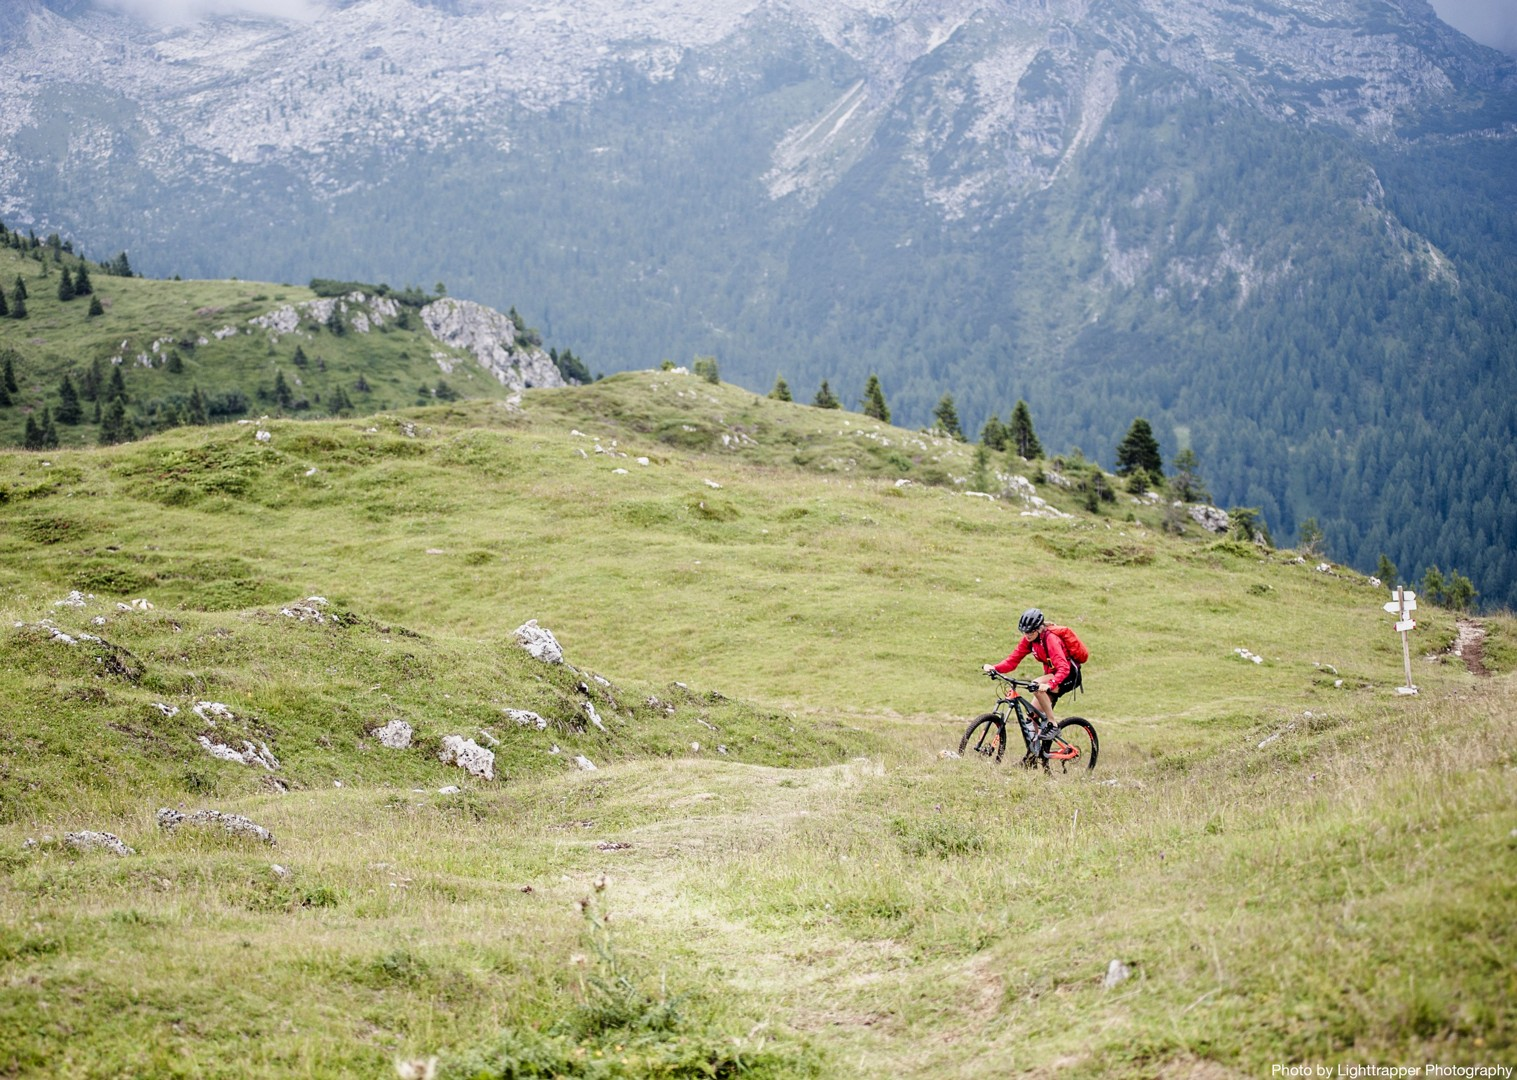 val-di-susa-guided-mountain-bike-holiday-italy-and-france-alpine-adventure.jpg - Italy and France - Alpine Adventure - Guided Mountain Bike Holiday - Italia Mountain Biking